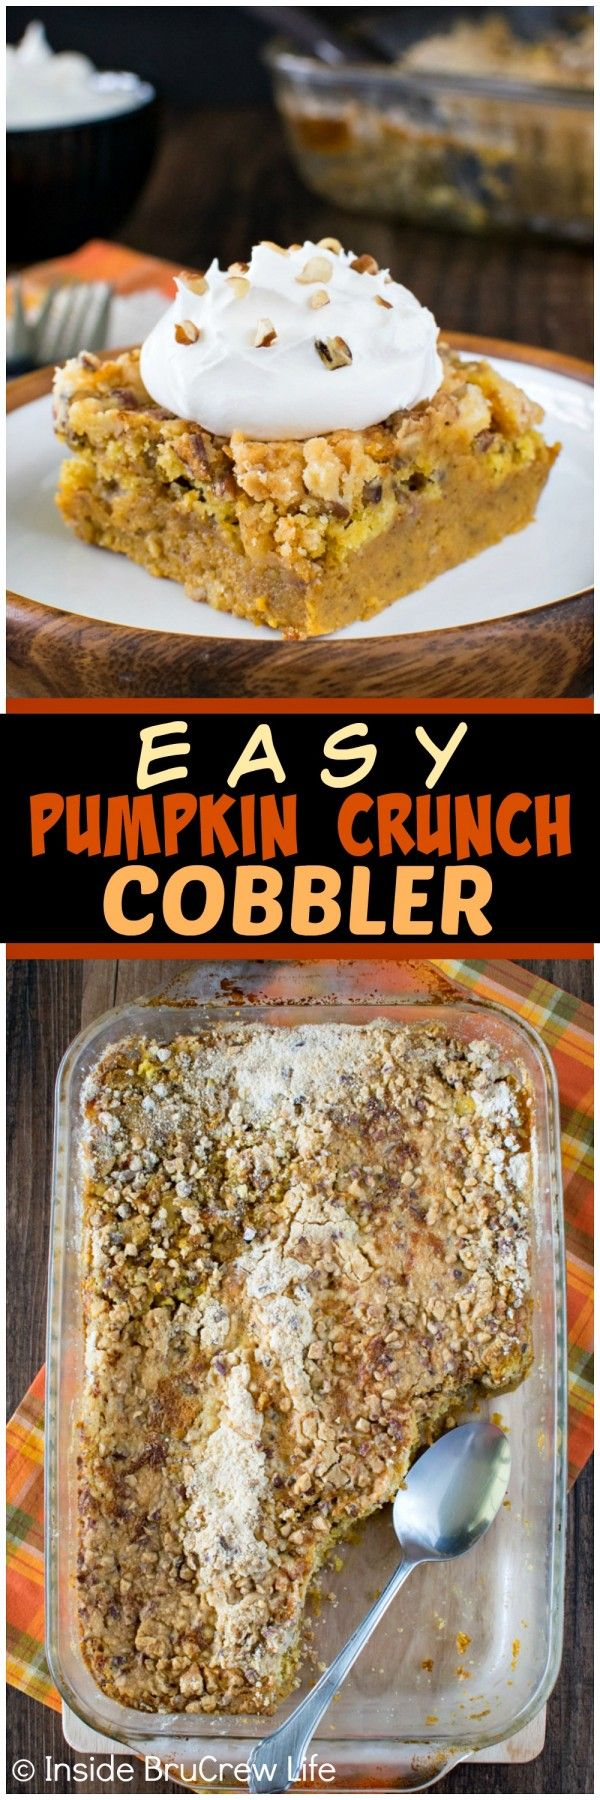 Easy Pumpkin Crunch Cobbler - a crunchy streusel topping and creamy pumpkin filling makes this dessert a great fall recipe!